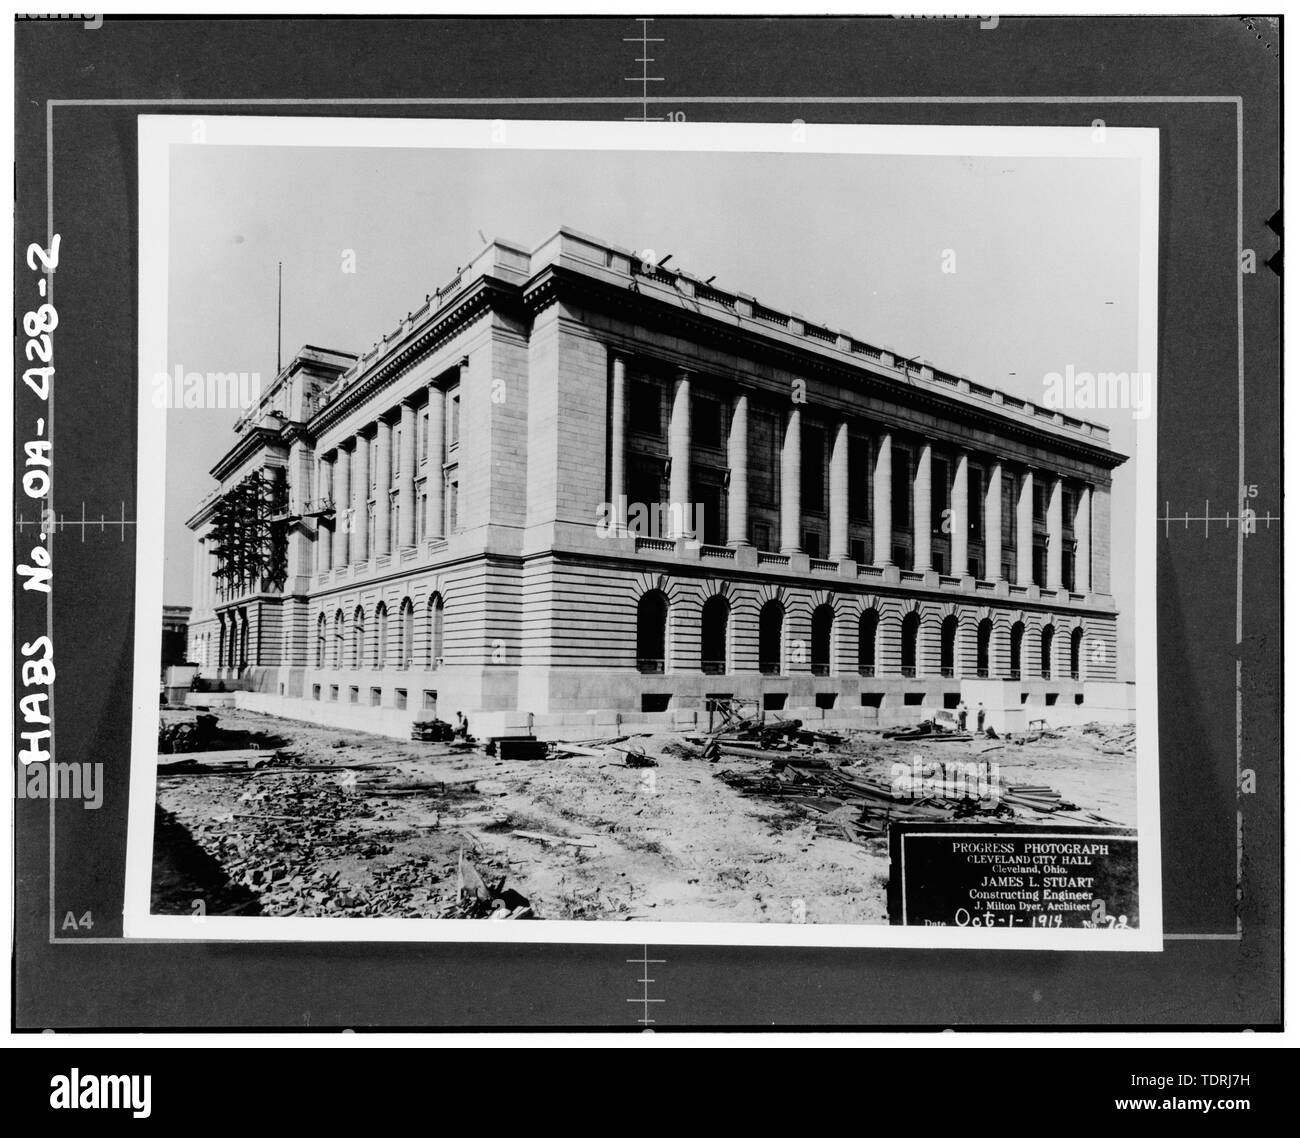 Photographer unknown,Oct. 1,1914,construction photo - Cleveland City Hall, 601 Lakeside Avenue, Cleveland, Cuyahoga County, OH - Stock Image